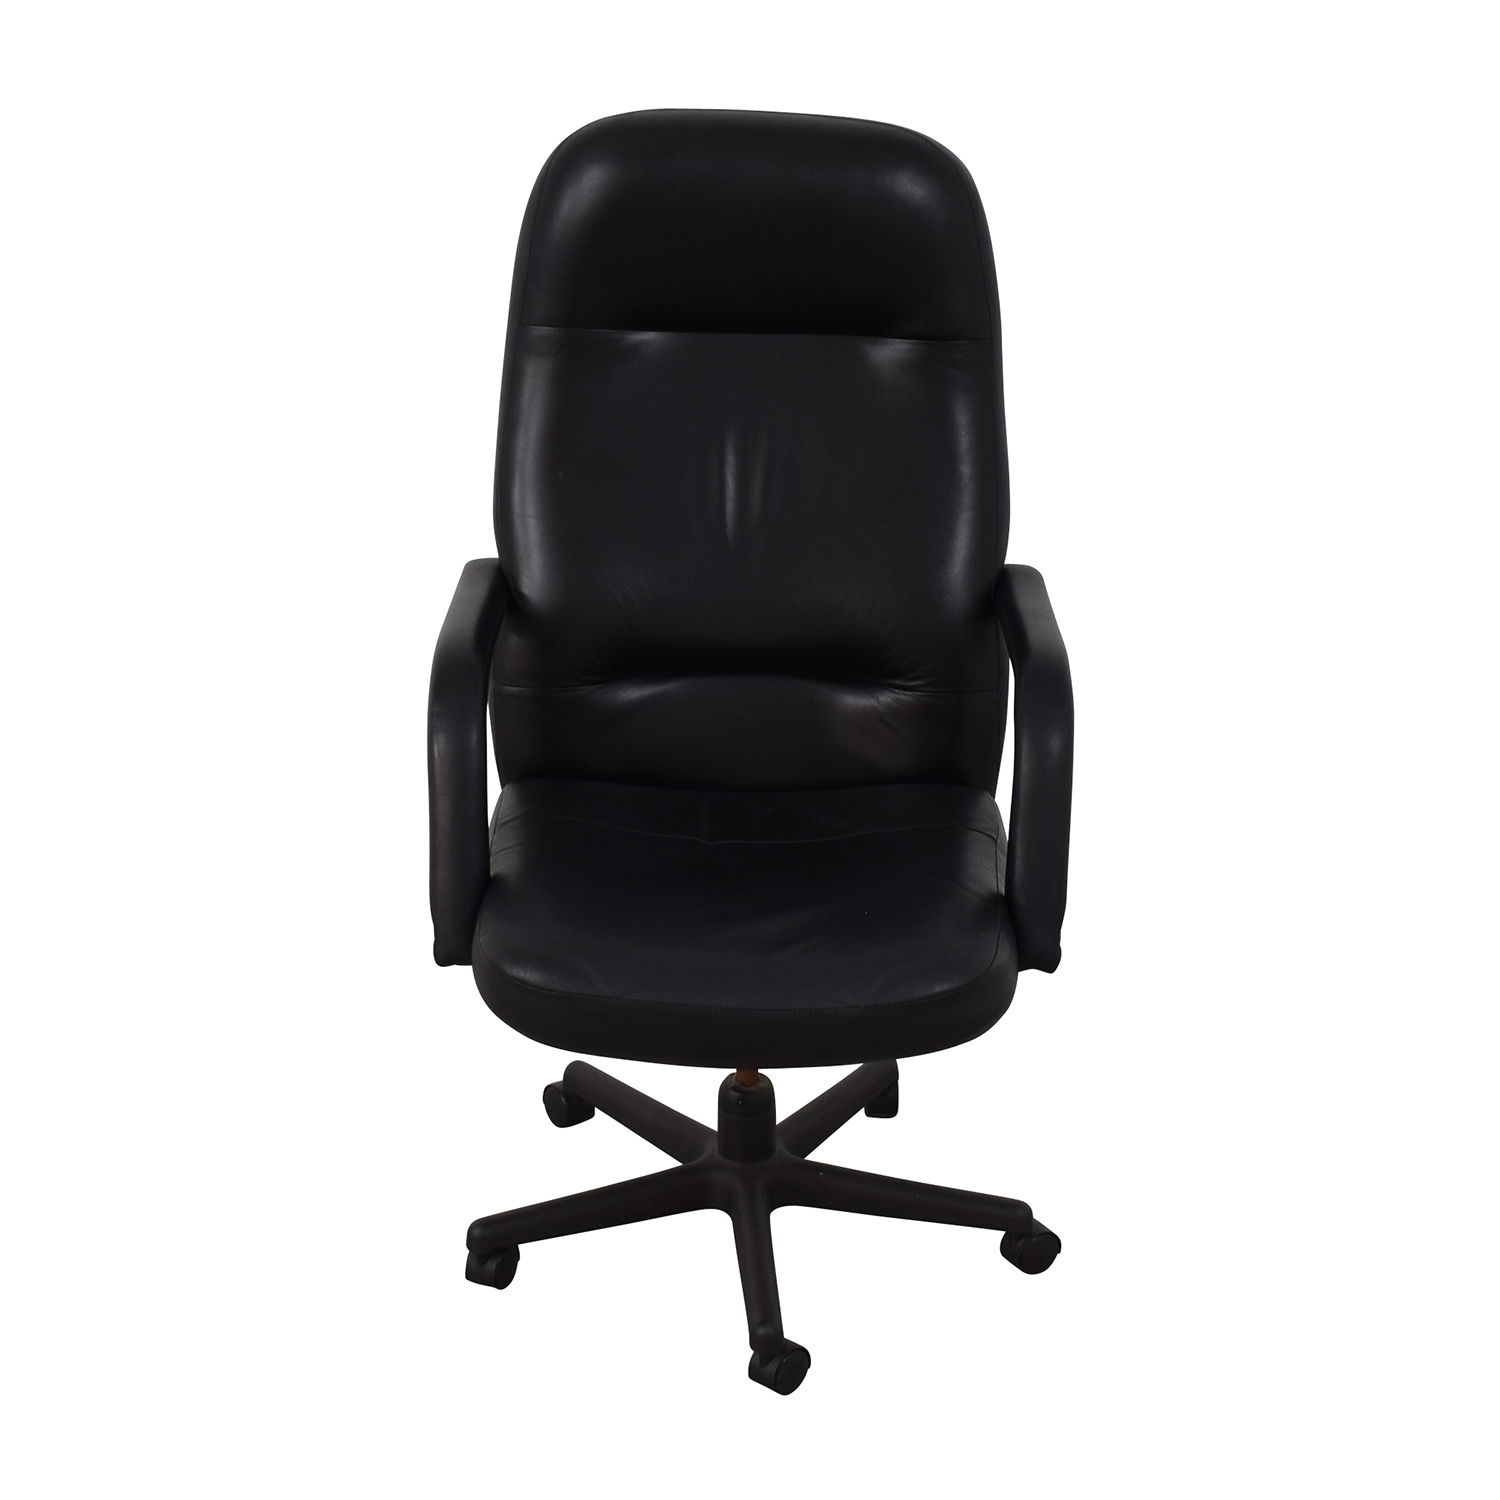 Leather Conference Room Chairs 77 Off Black Leather Conference Room Chair Chairs